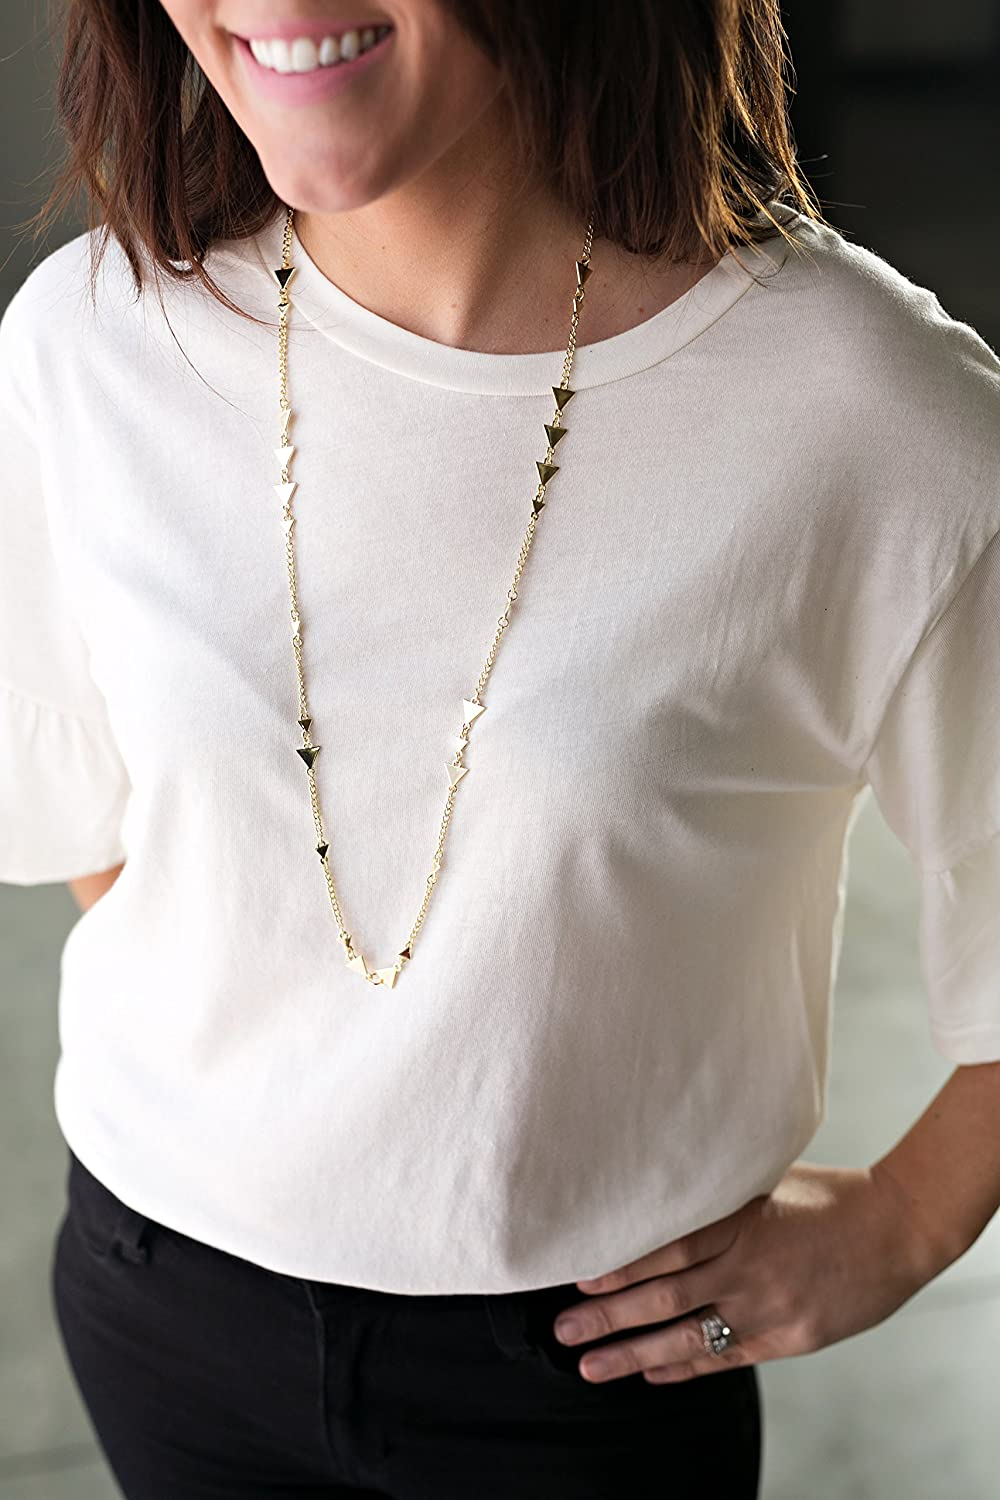 Michelle Womens Fashion Lanyard Silver Triangle Necklace with Swivel Clasp Gold